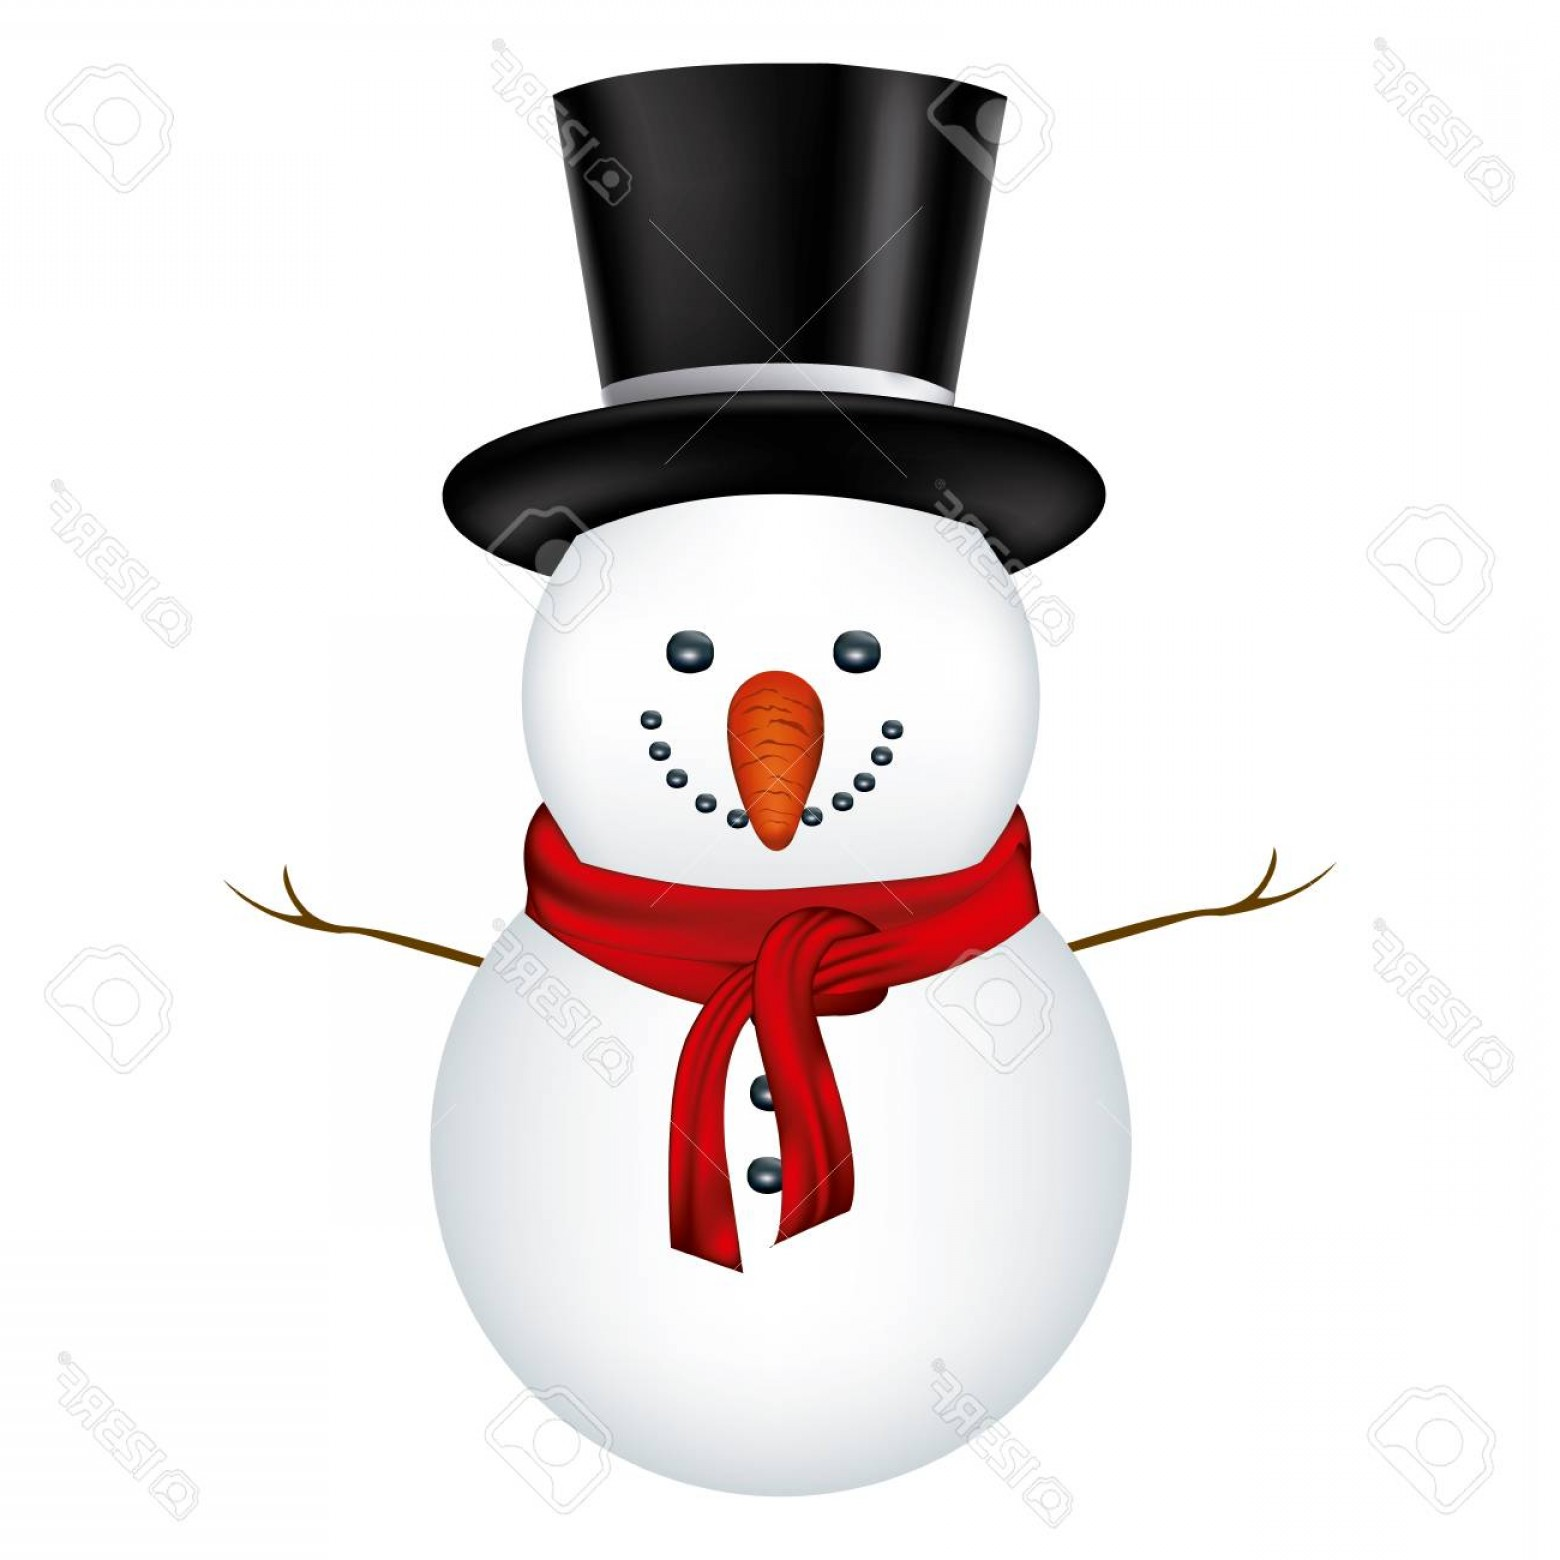 No Hat With Snowman Vector: Photostock Vector Snowman With Black Hat And Scarf In White Background Vector Illustration